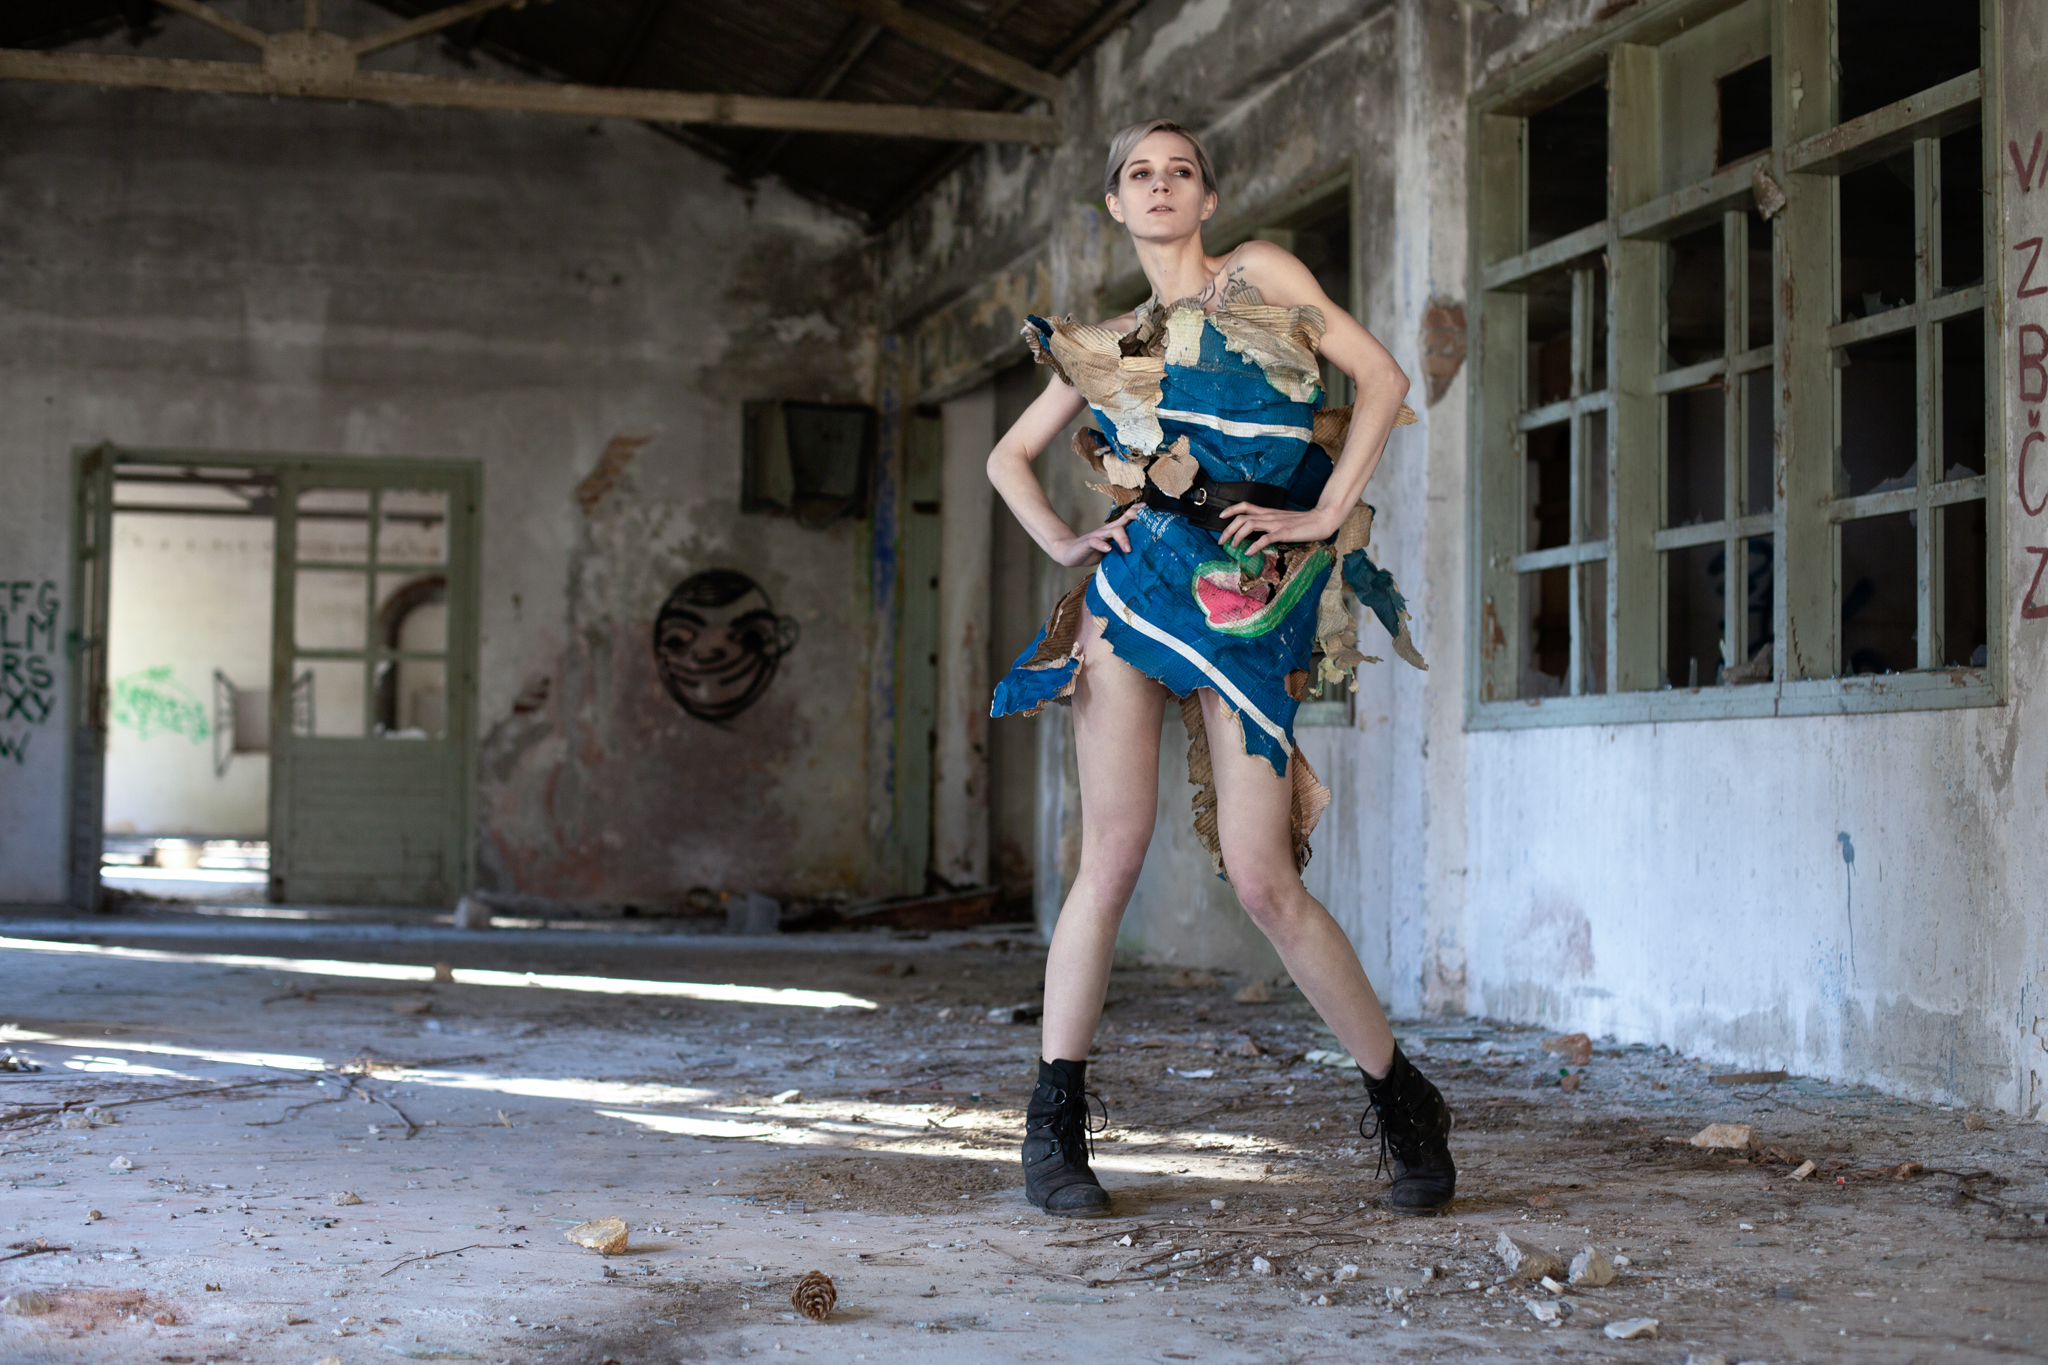 Roxx, shot by Redd, at Pula's abandoned naval base, wearing naturally-weathered discarded paper.